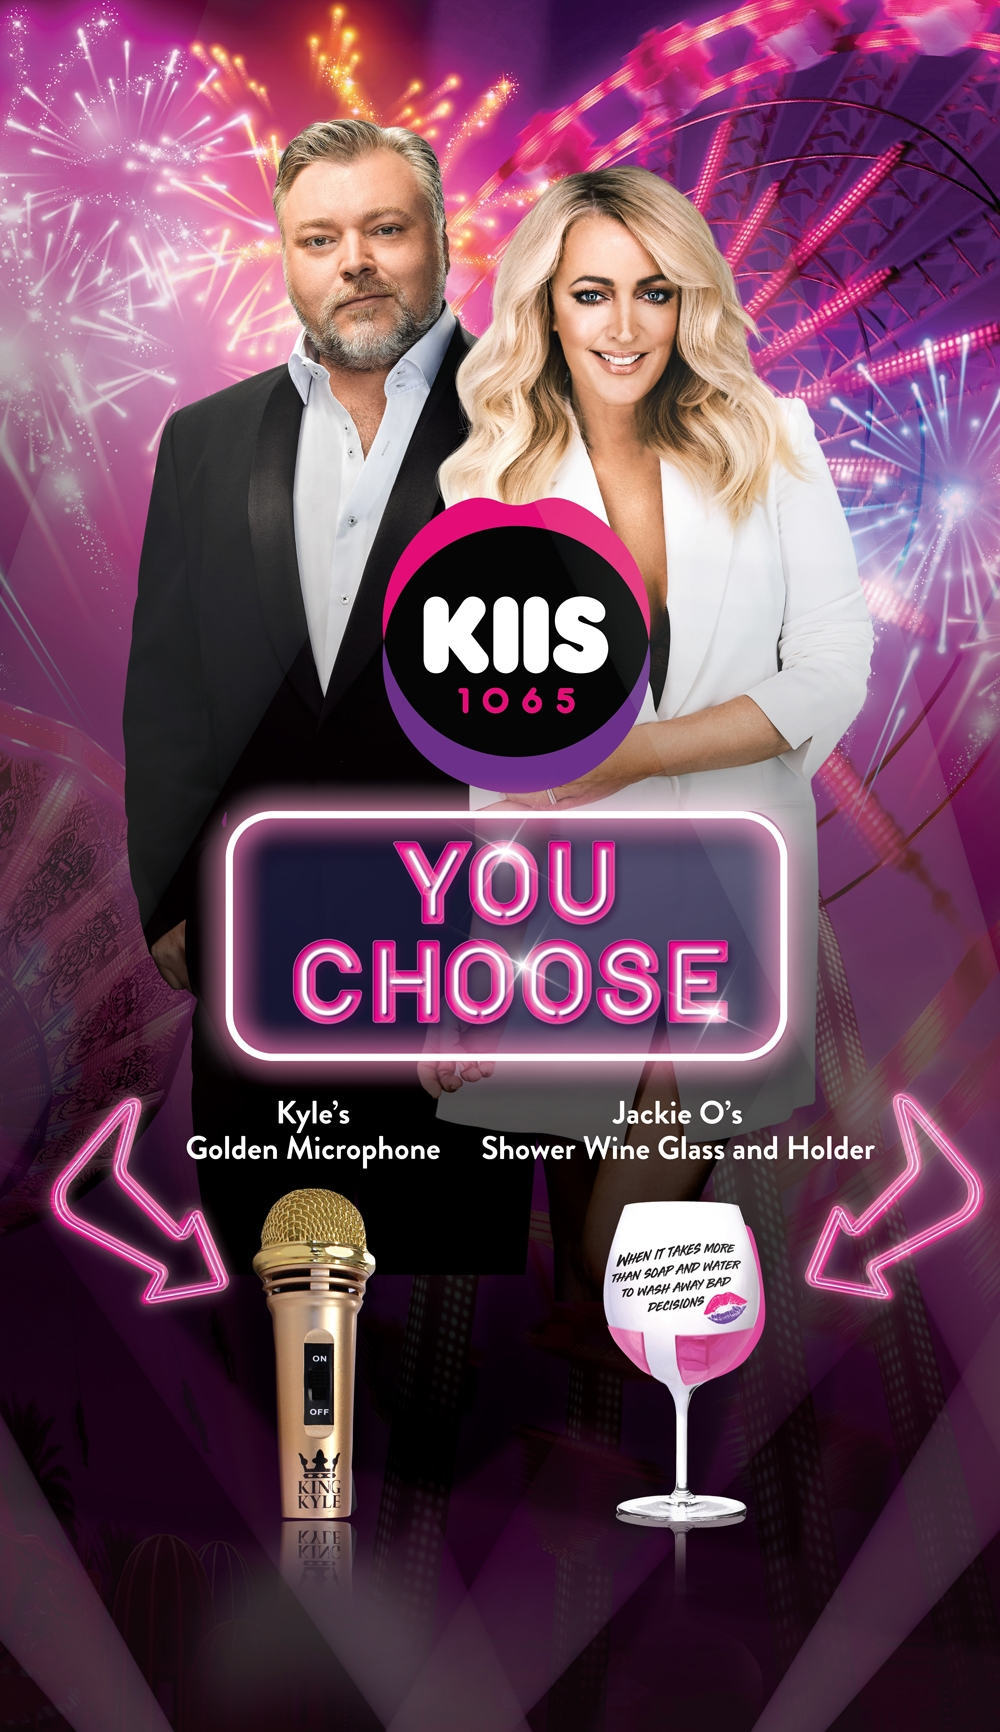 KIIS_SIGNAGE_700_1200_choose